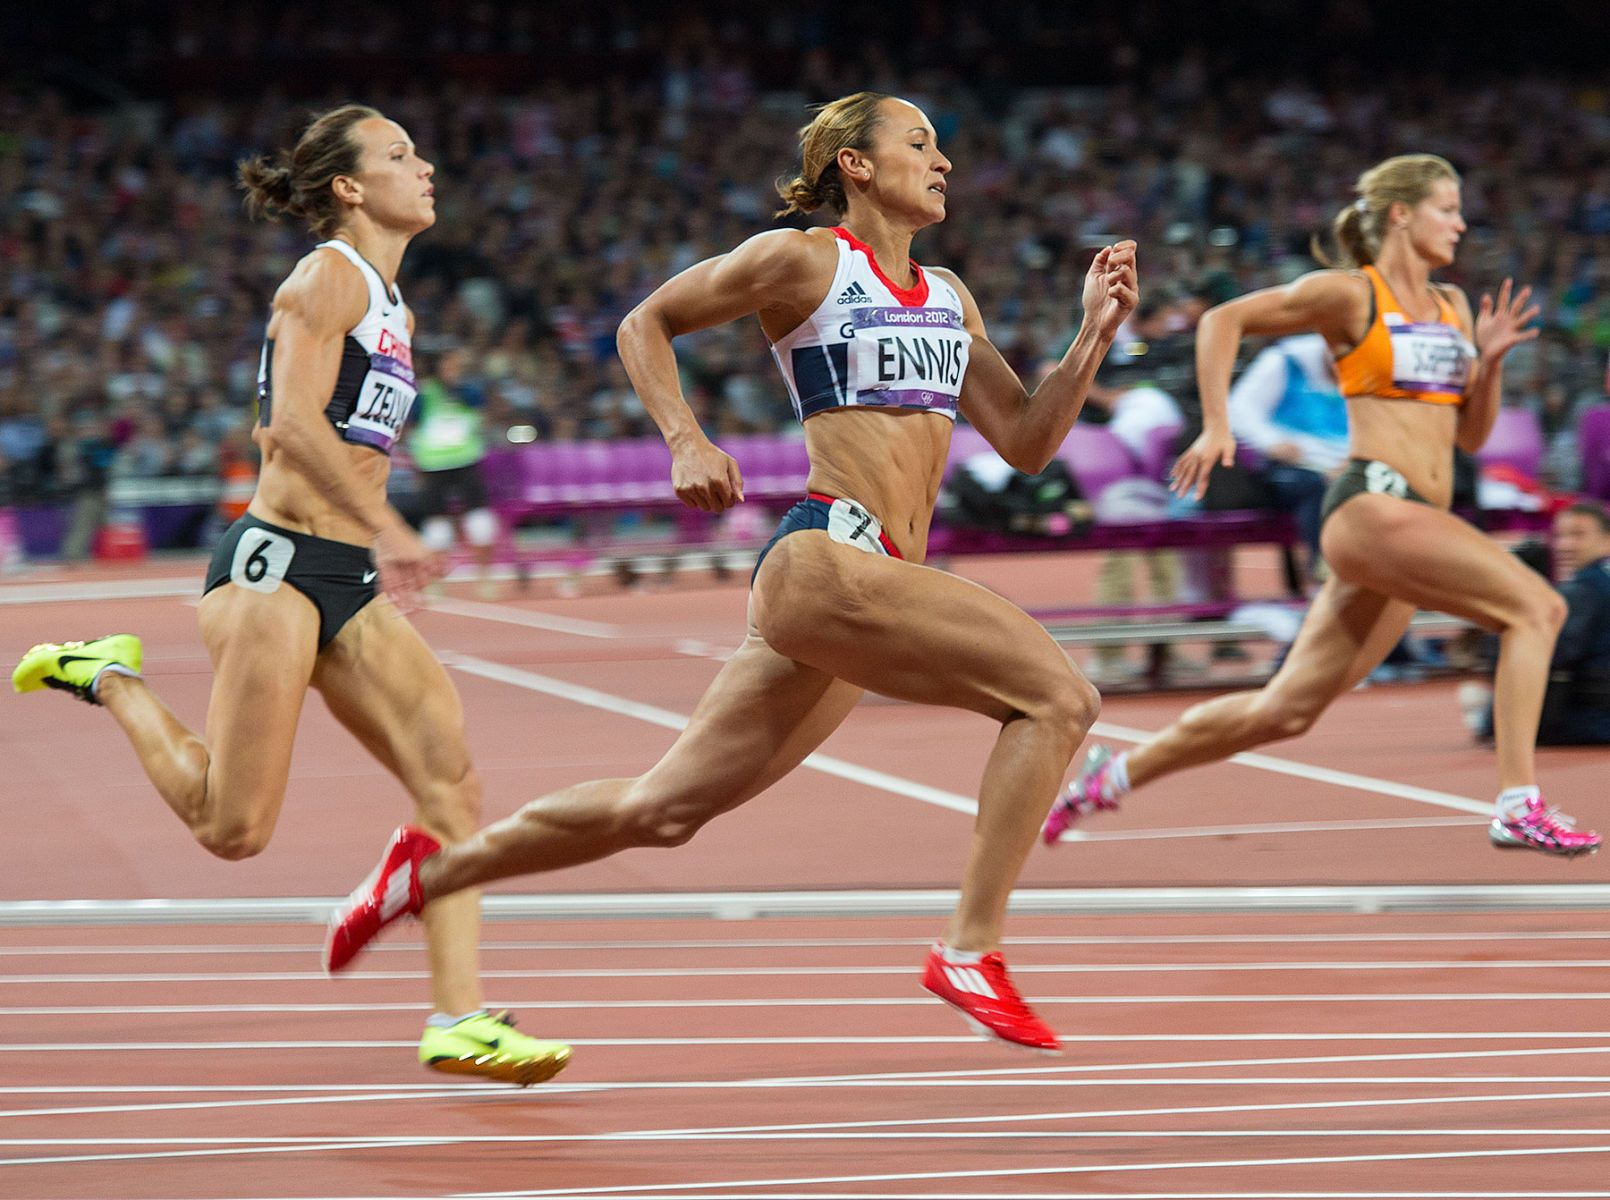 1london2012_jessica_ennis_heptahlon_track_and_field_image_jeff_cohen_photo_lb.jpg